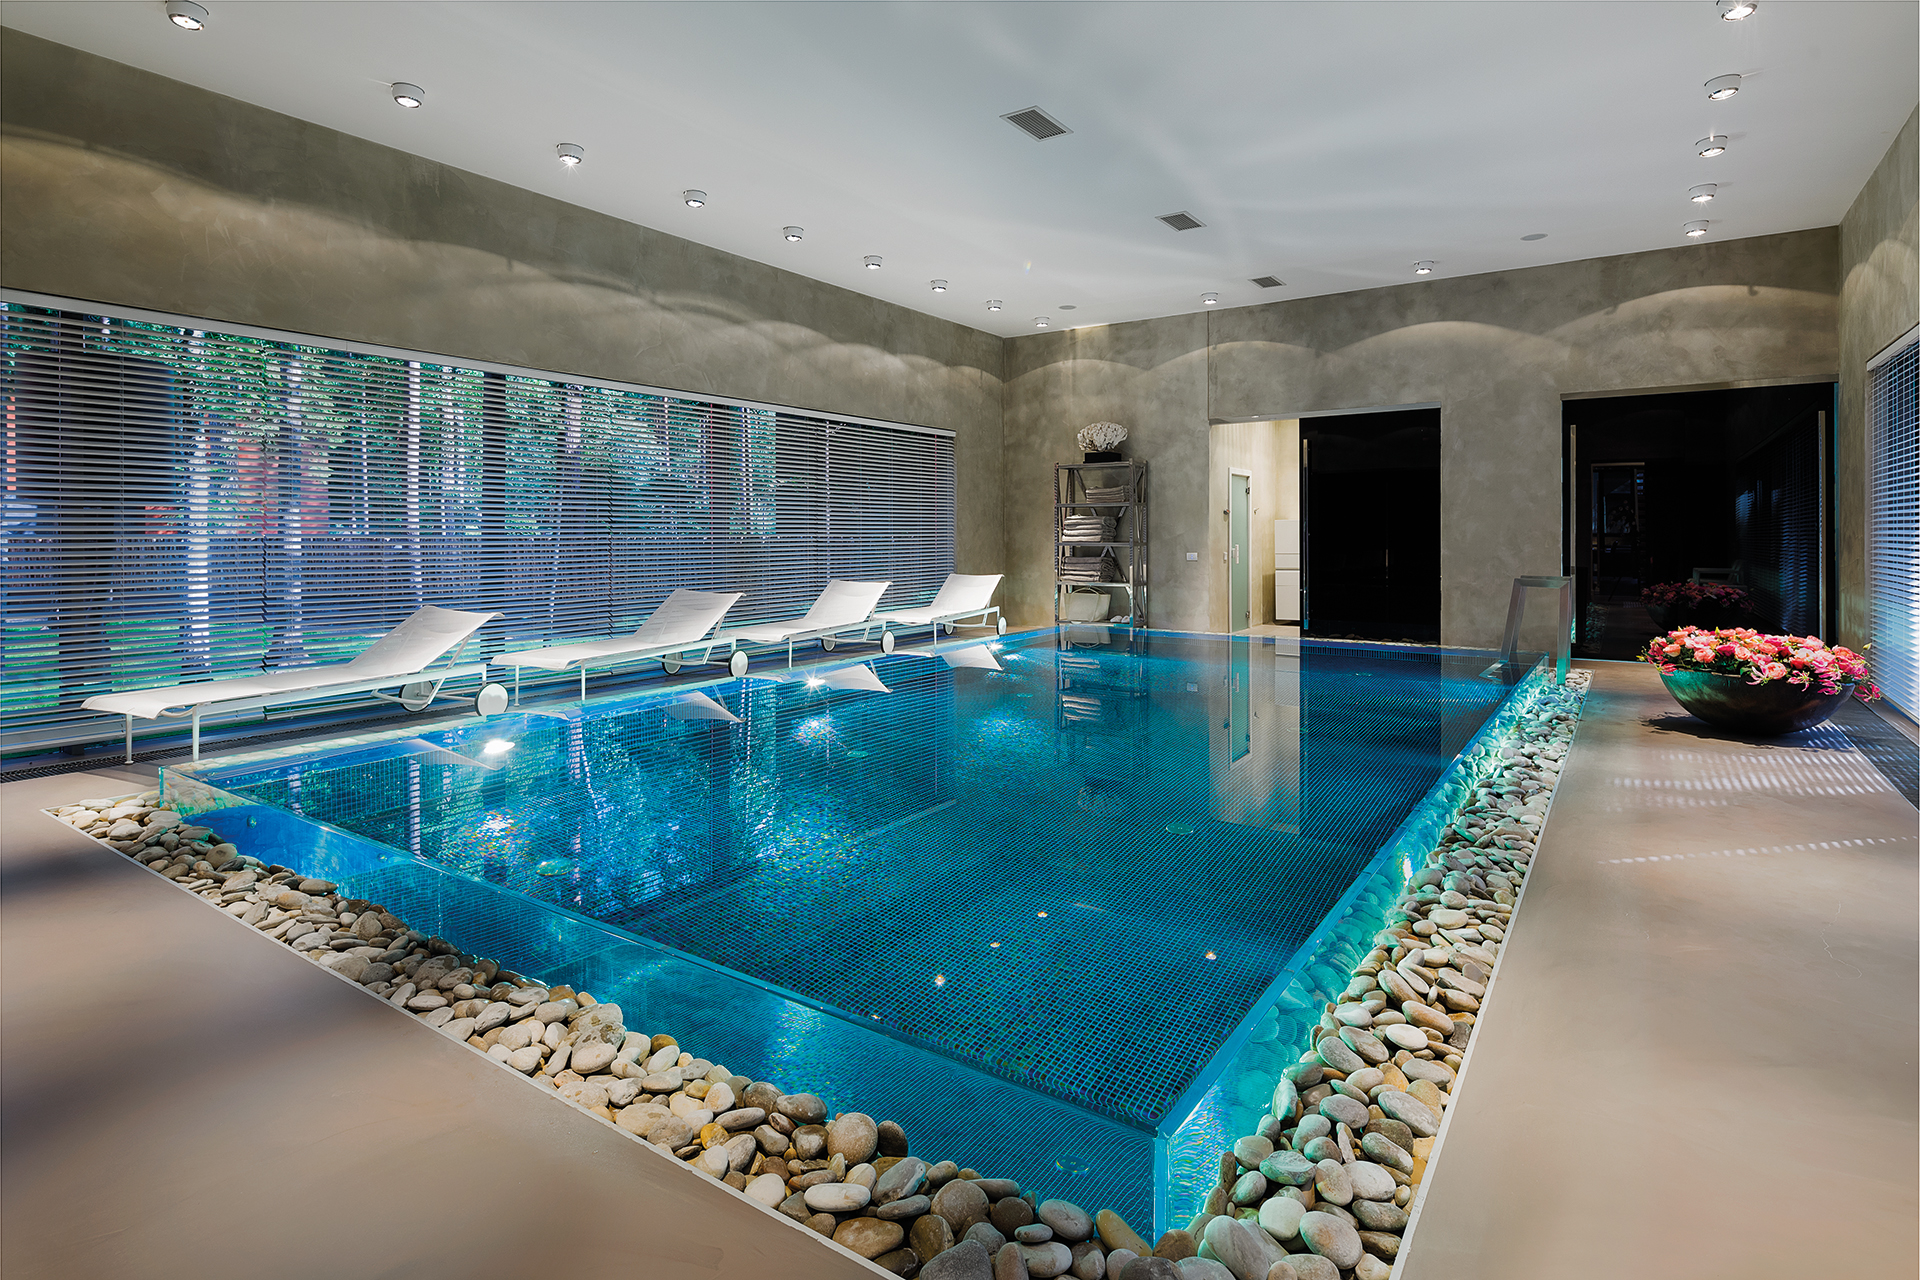 raised pool in a strong clear acryllic tub surrounded by person high windows with shutters